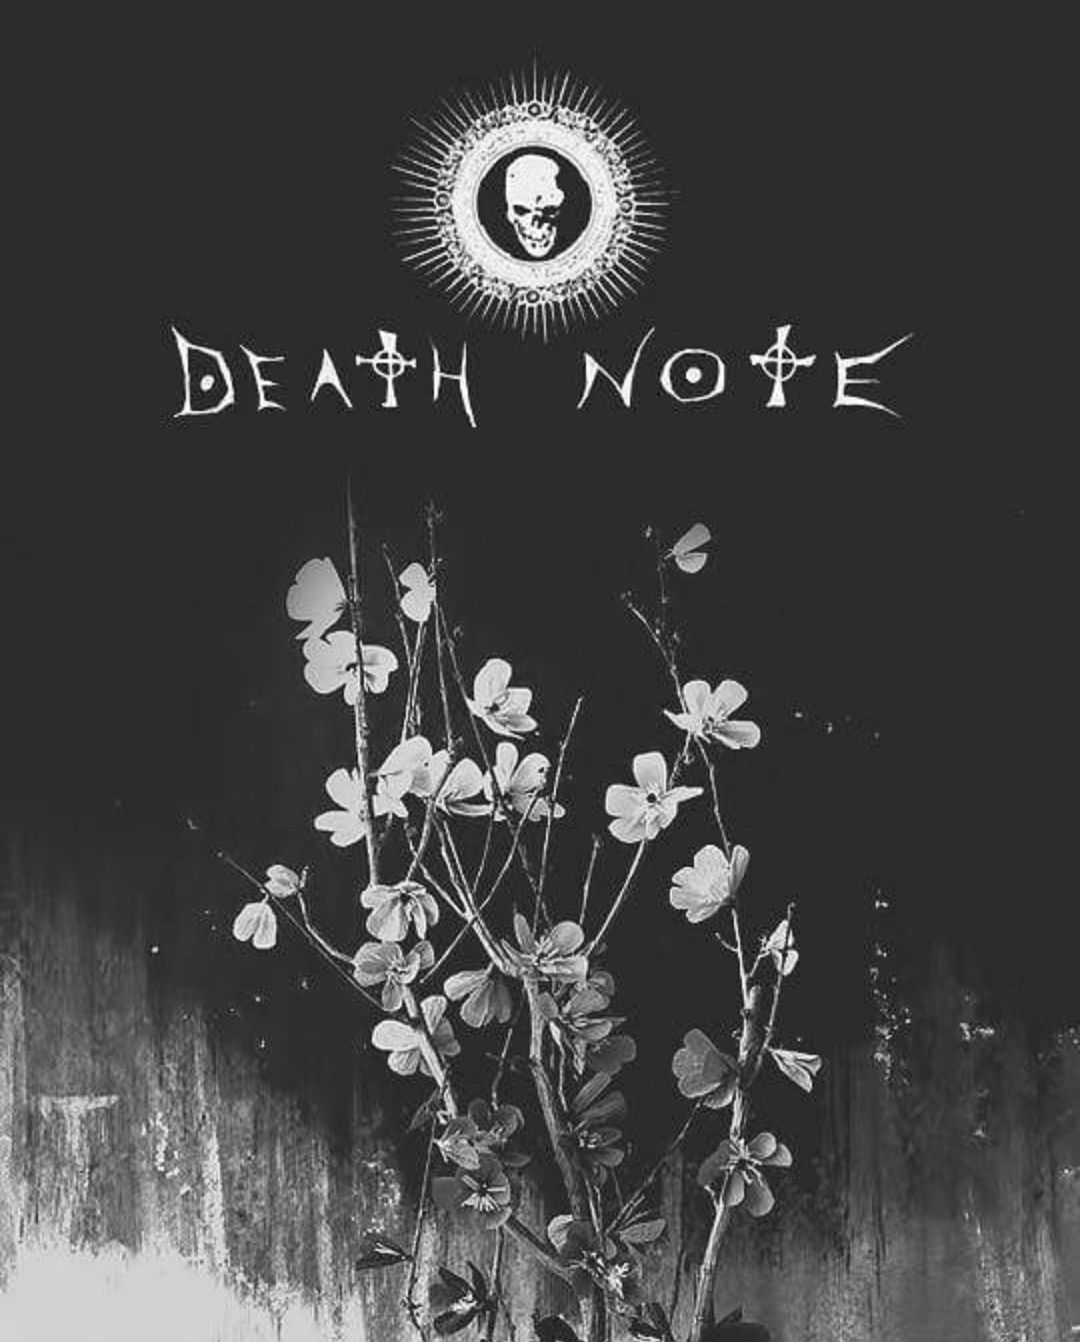 Pin by aim www on Wallpapers Death note wallpaper iphone